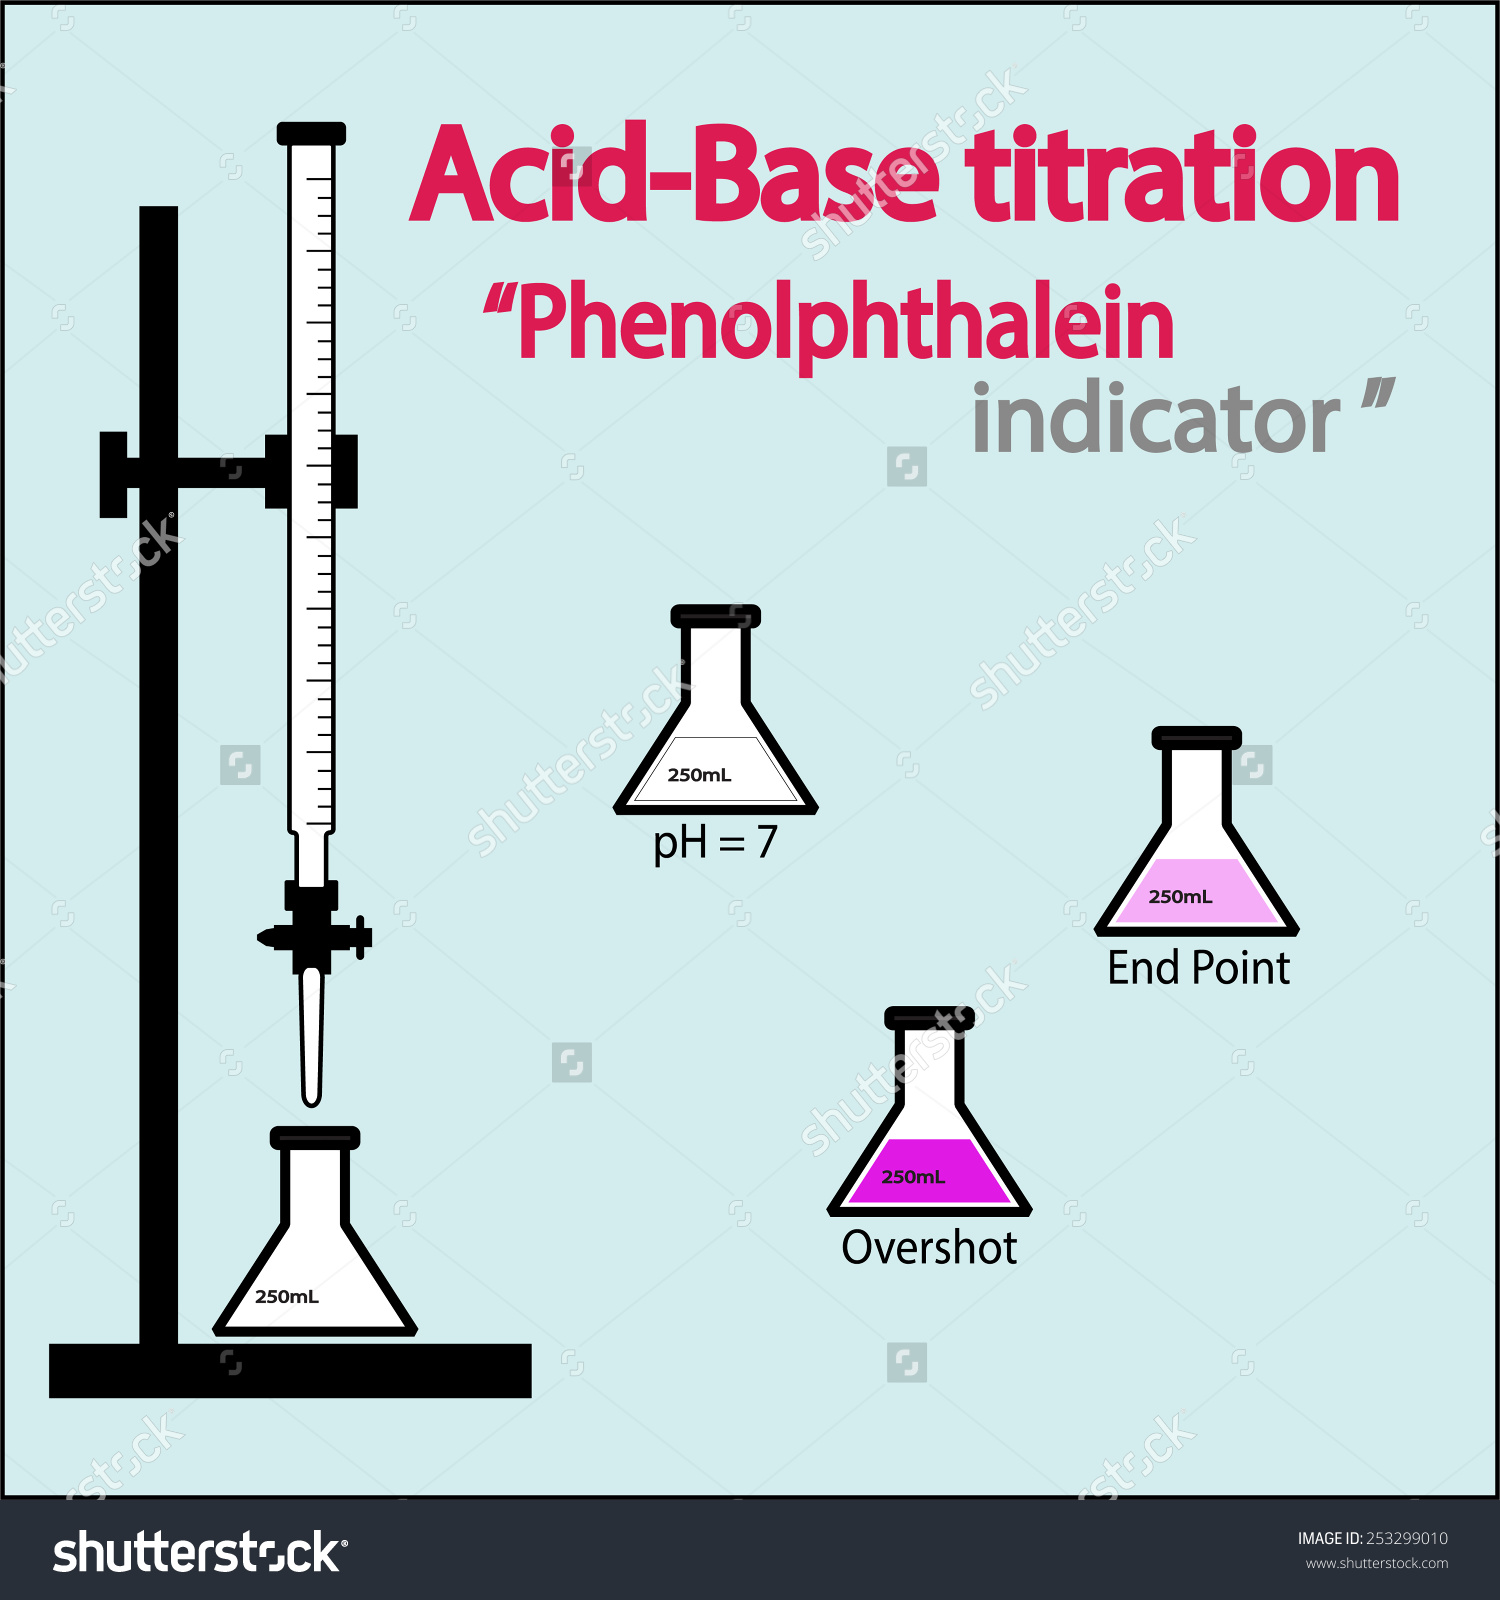 Acidbase Titration Setup Phenolphthalein Indicator Vector Stock.